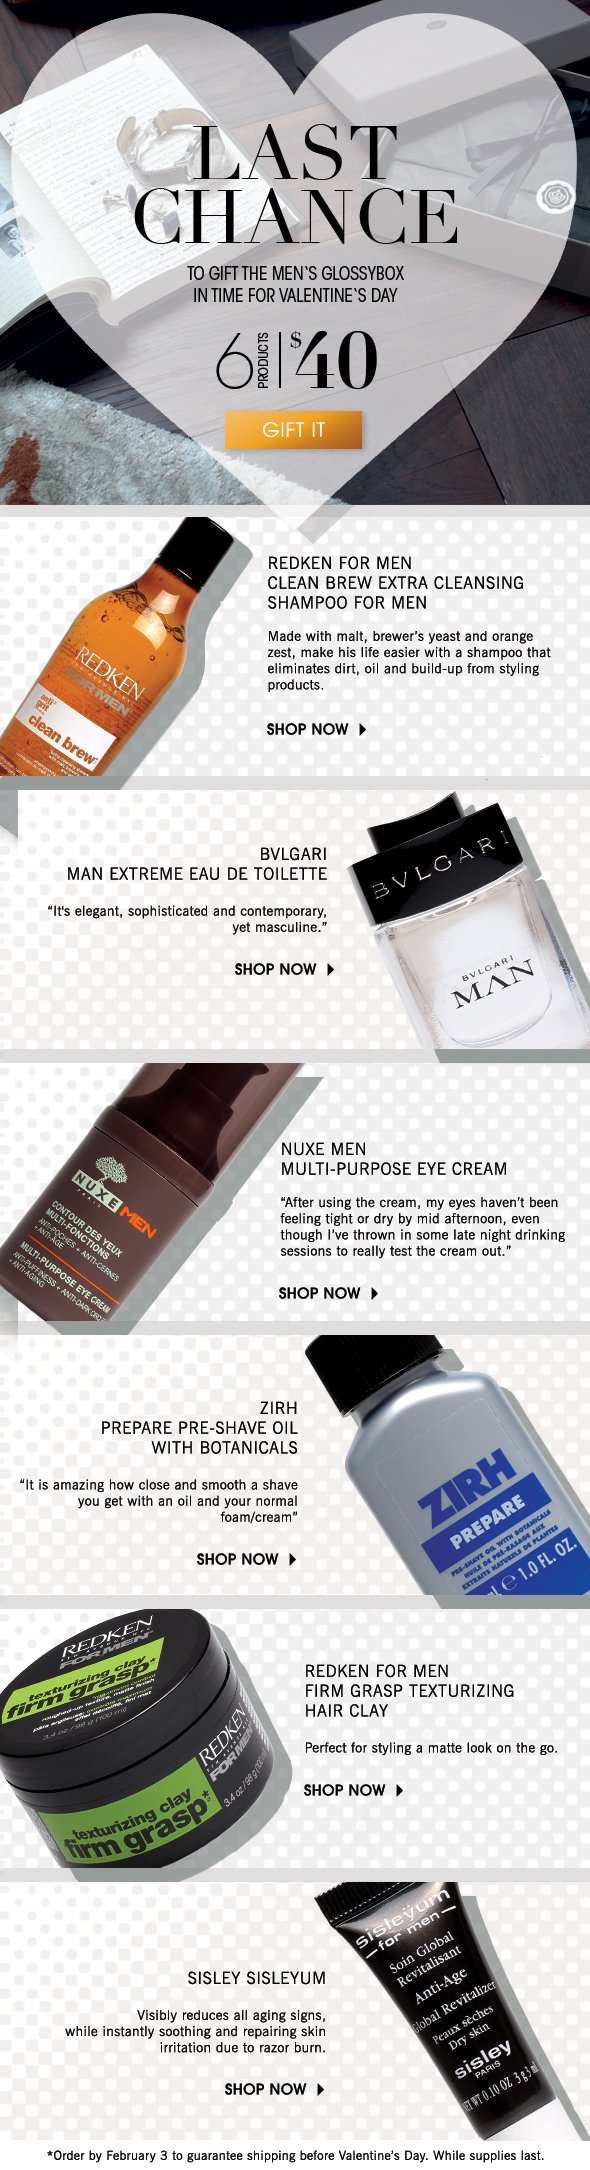 >> Last Chance to gift the Men's GLOSSYBOX in time for Valentine's Day